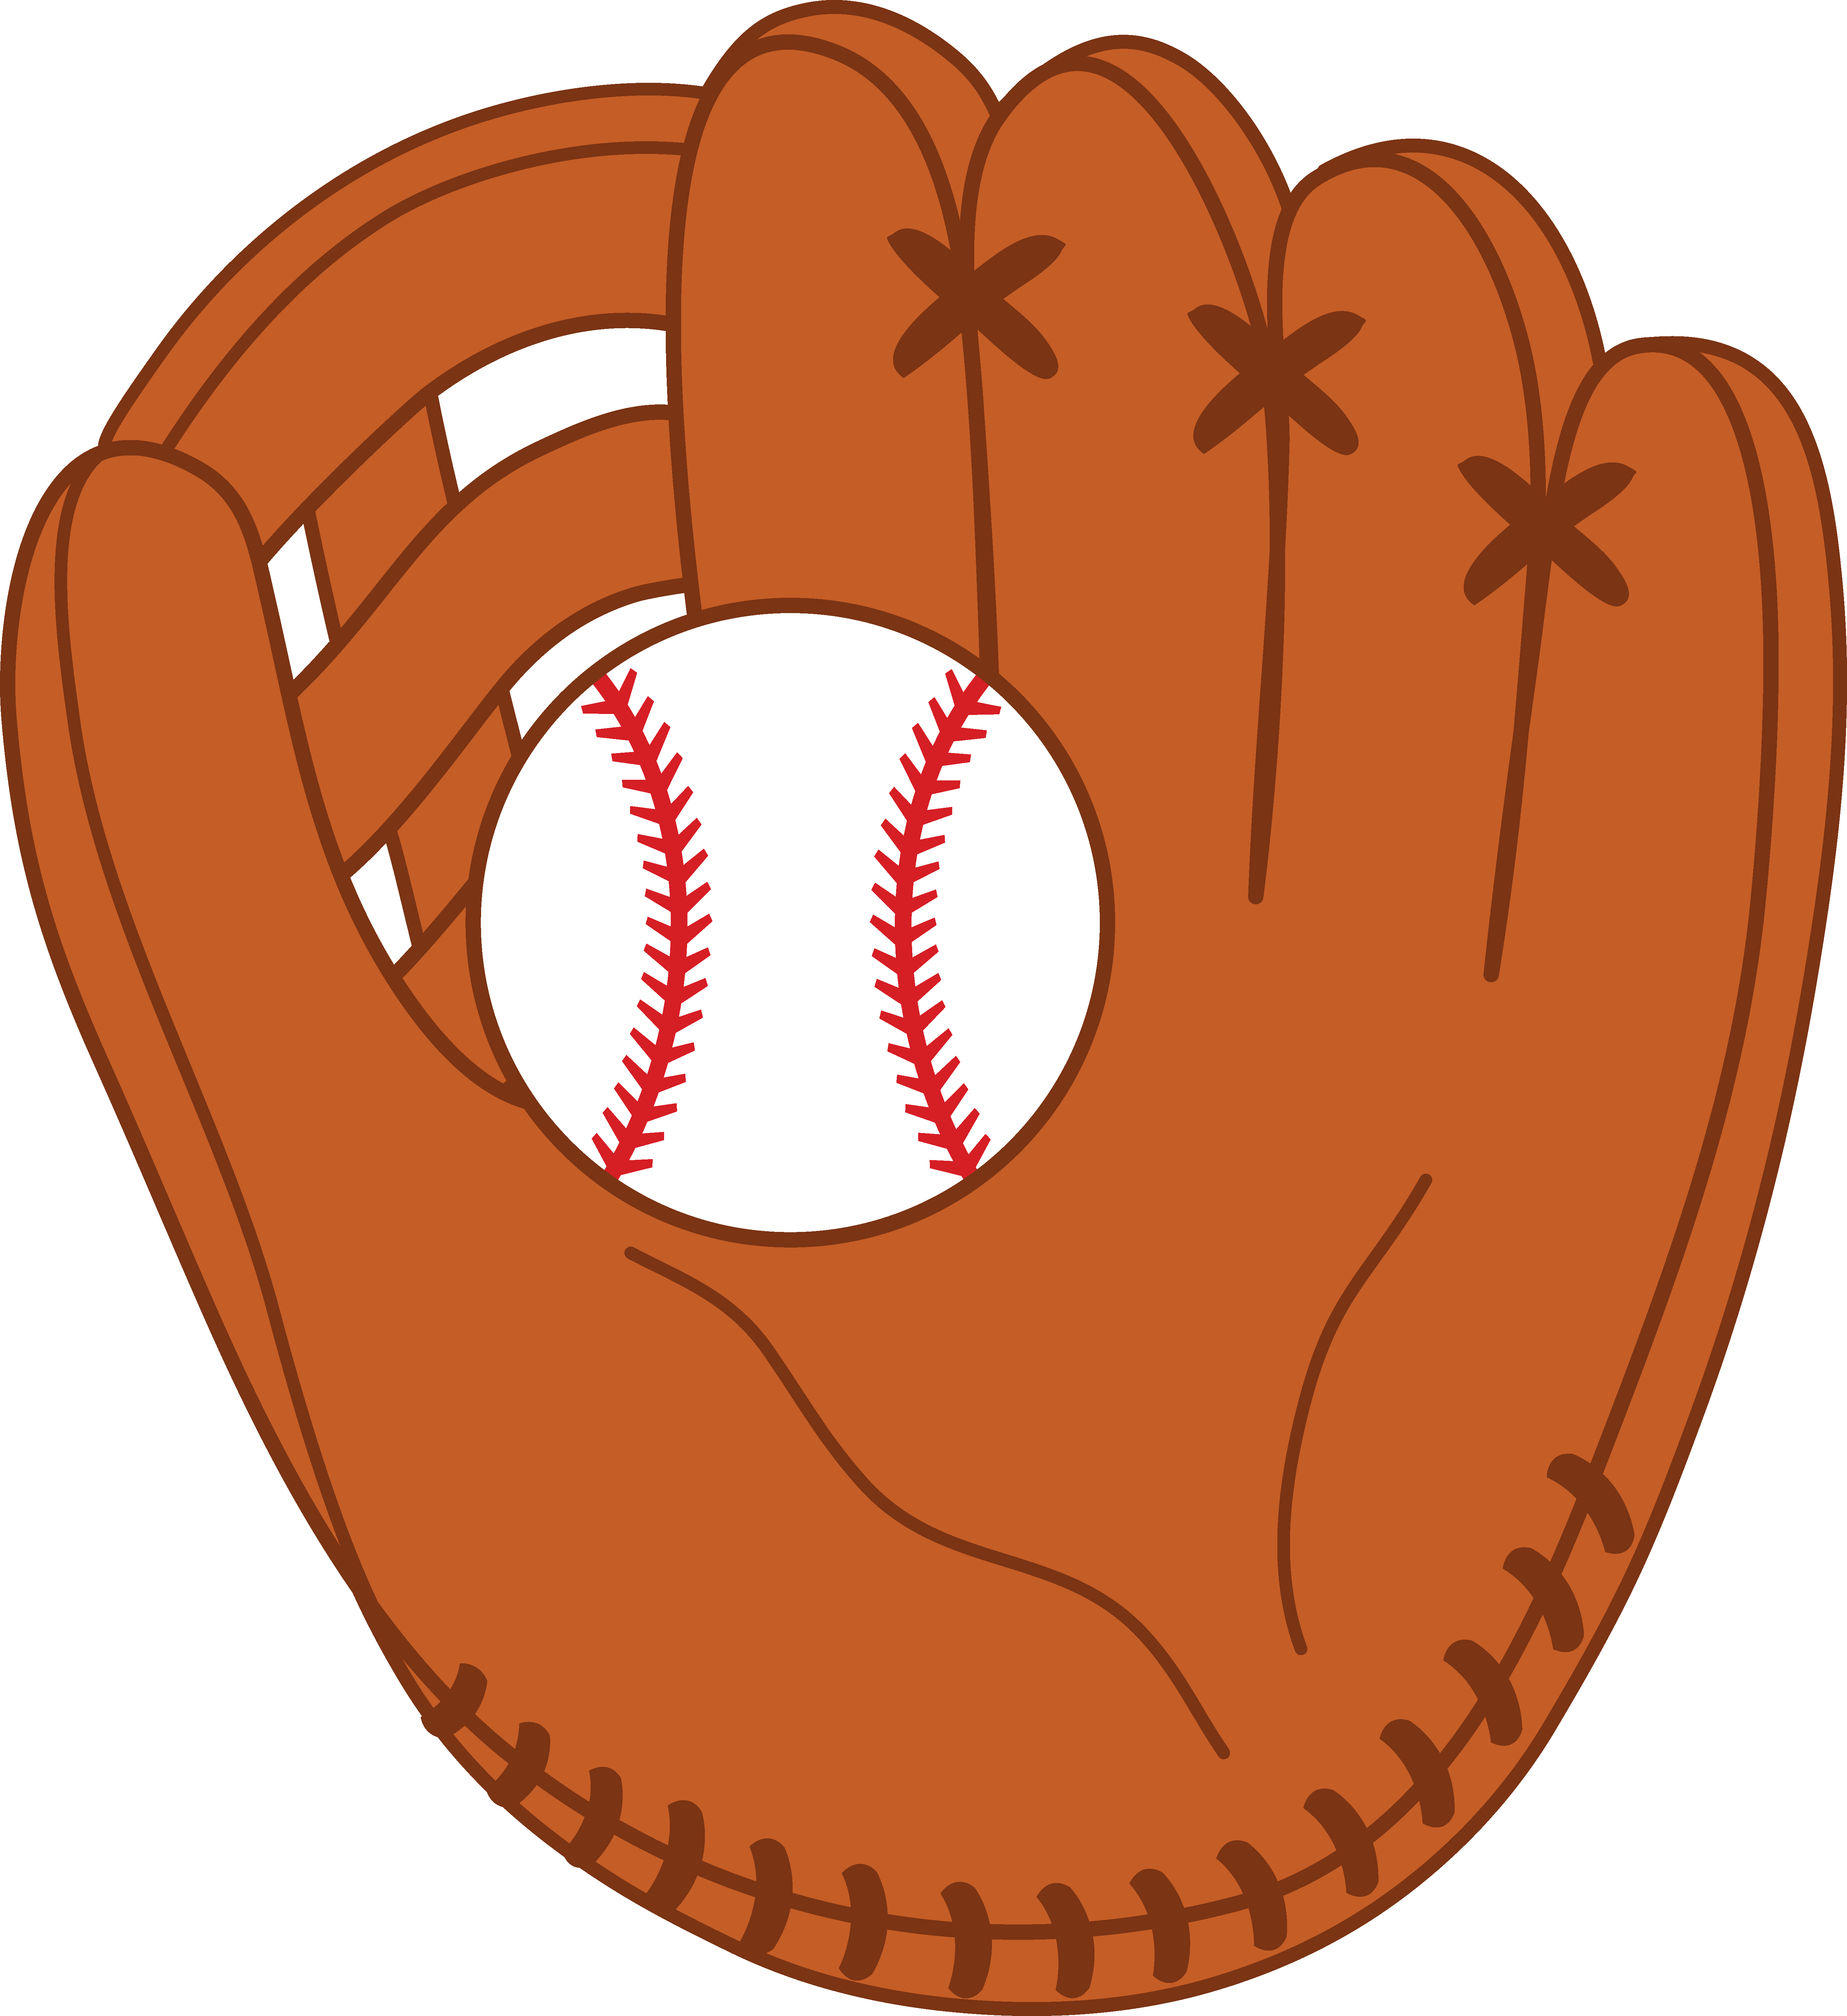 Baseball base clipart graphic free library Baseball Cliparts Arrow Free collection | Download and share ... graphic free library